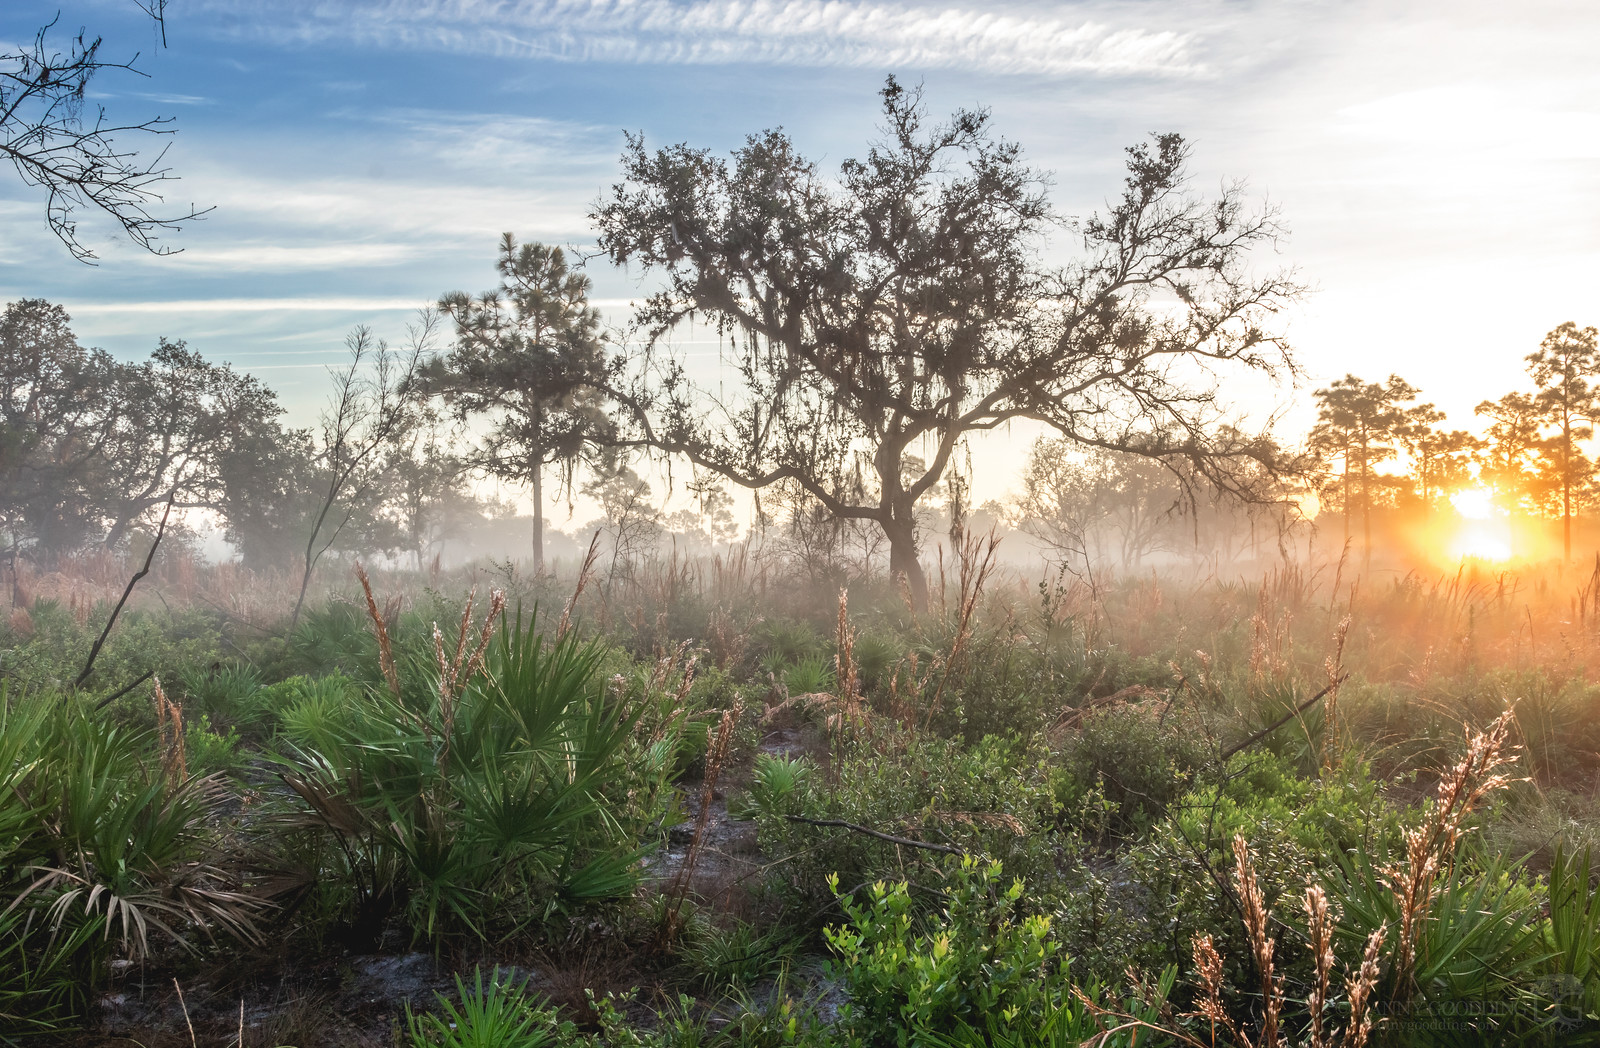 Foggy sunrise at Split Oak Forest in SE Orlando, Florida [OC] [1600x1048]